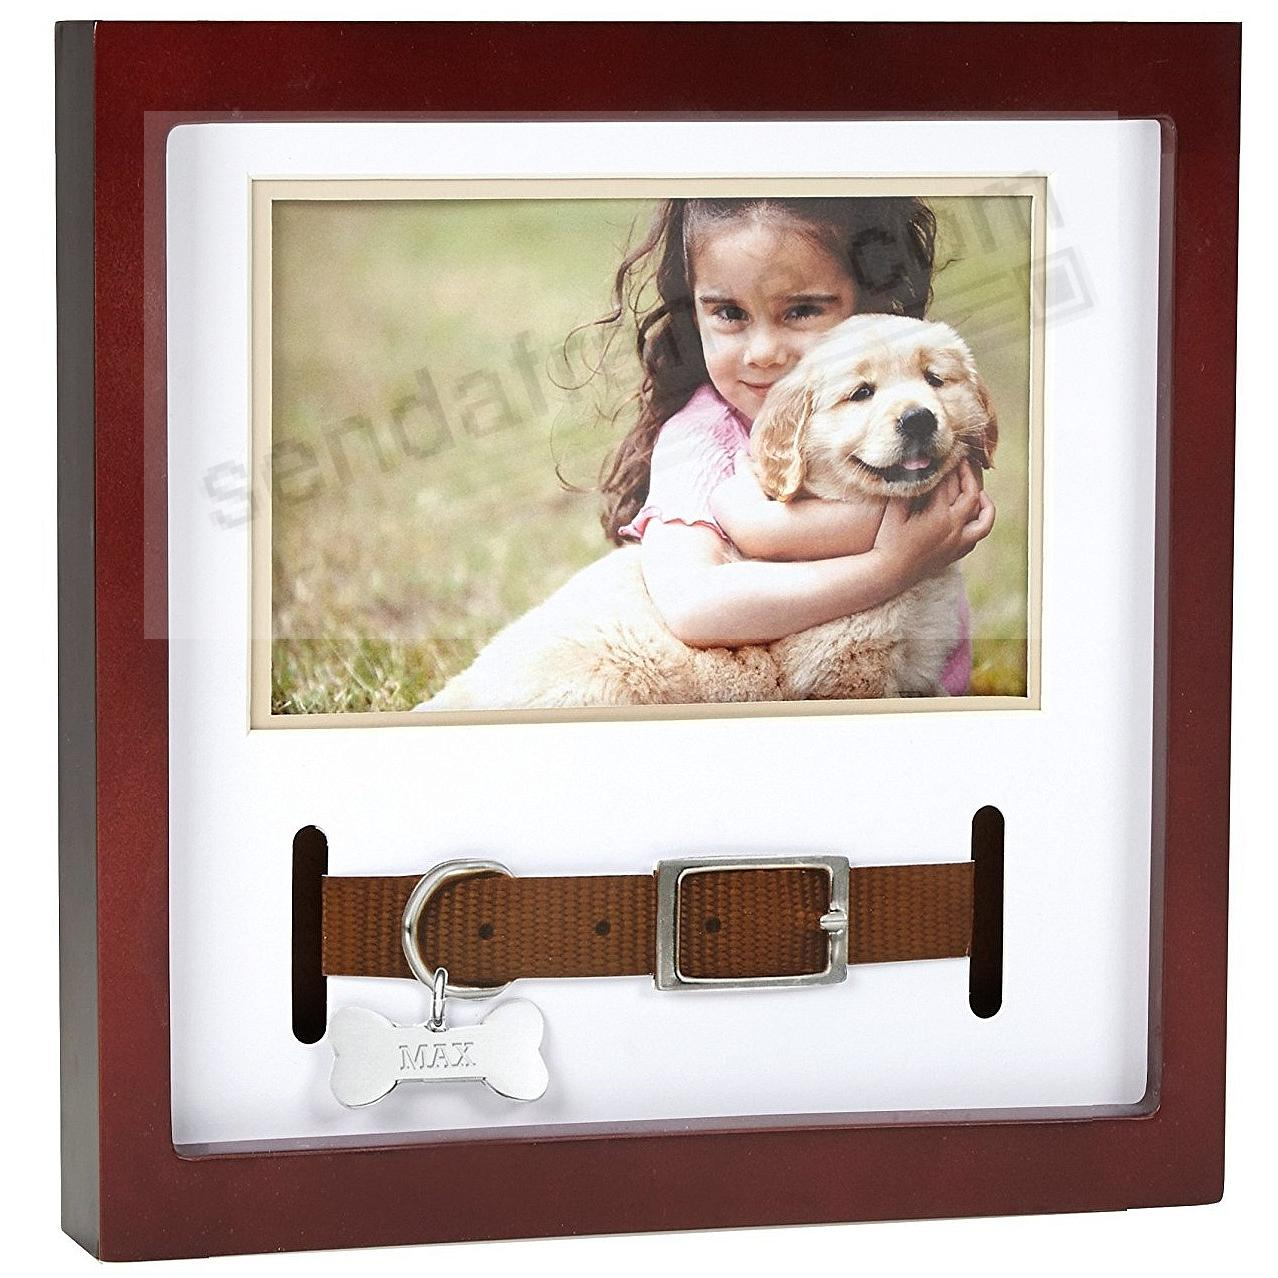 Pawprints® COLLAR FRAME Expresso-Brown Stain Wood